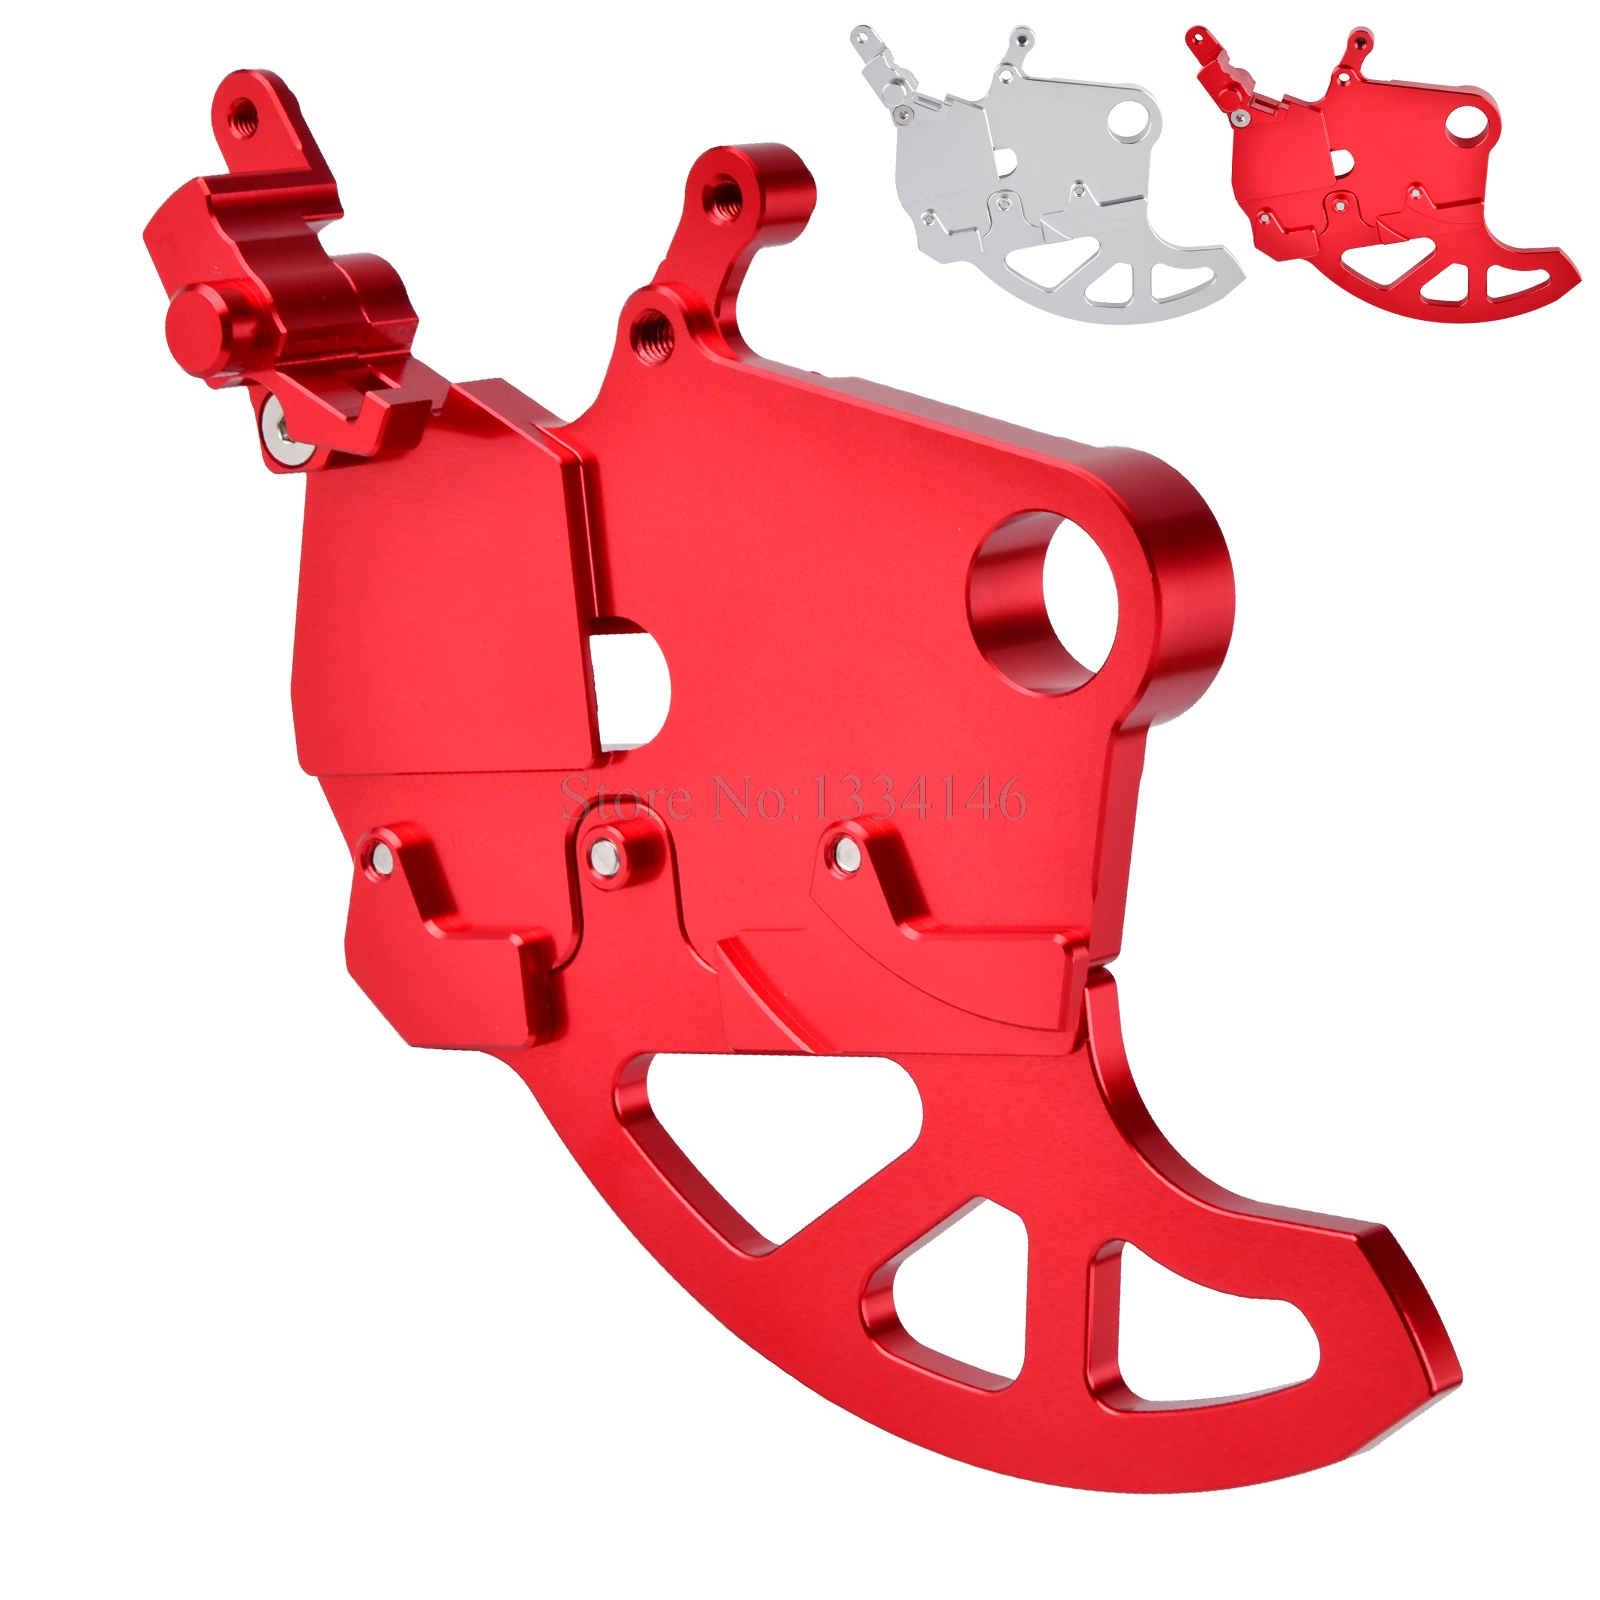 NICECNC Motorcycle Rear Brake Disc Guard Protector For Honda CR125 CR250 CRF250R CRF250X CRF450R CRF450X 2002-2017 2018 CRF 250R red cnc pivot brake clutch levers for honda crf 250r 450r crf250r crf450r 2004 2006 crf 250x 450x crf250x crf450x 2005 2016